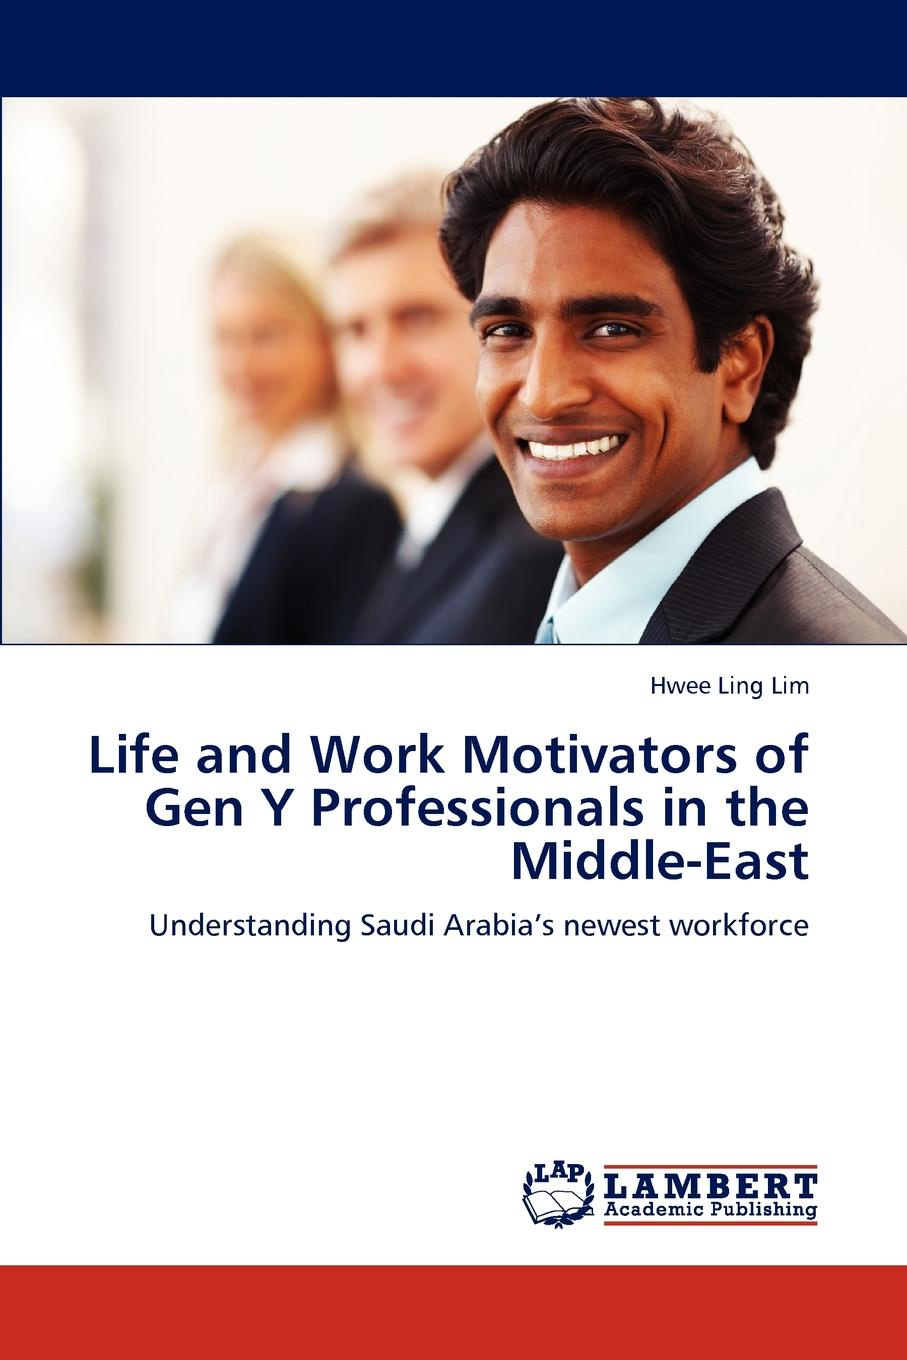 Hwee Ling Lim Life and Work Motivators of Gen Y Professionals in the Middle-East edward burton business and entrepreneurship in saudi arabia opportunities for partnering and investing in emerging businesses